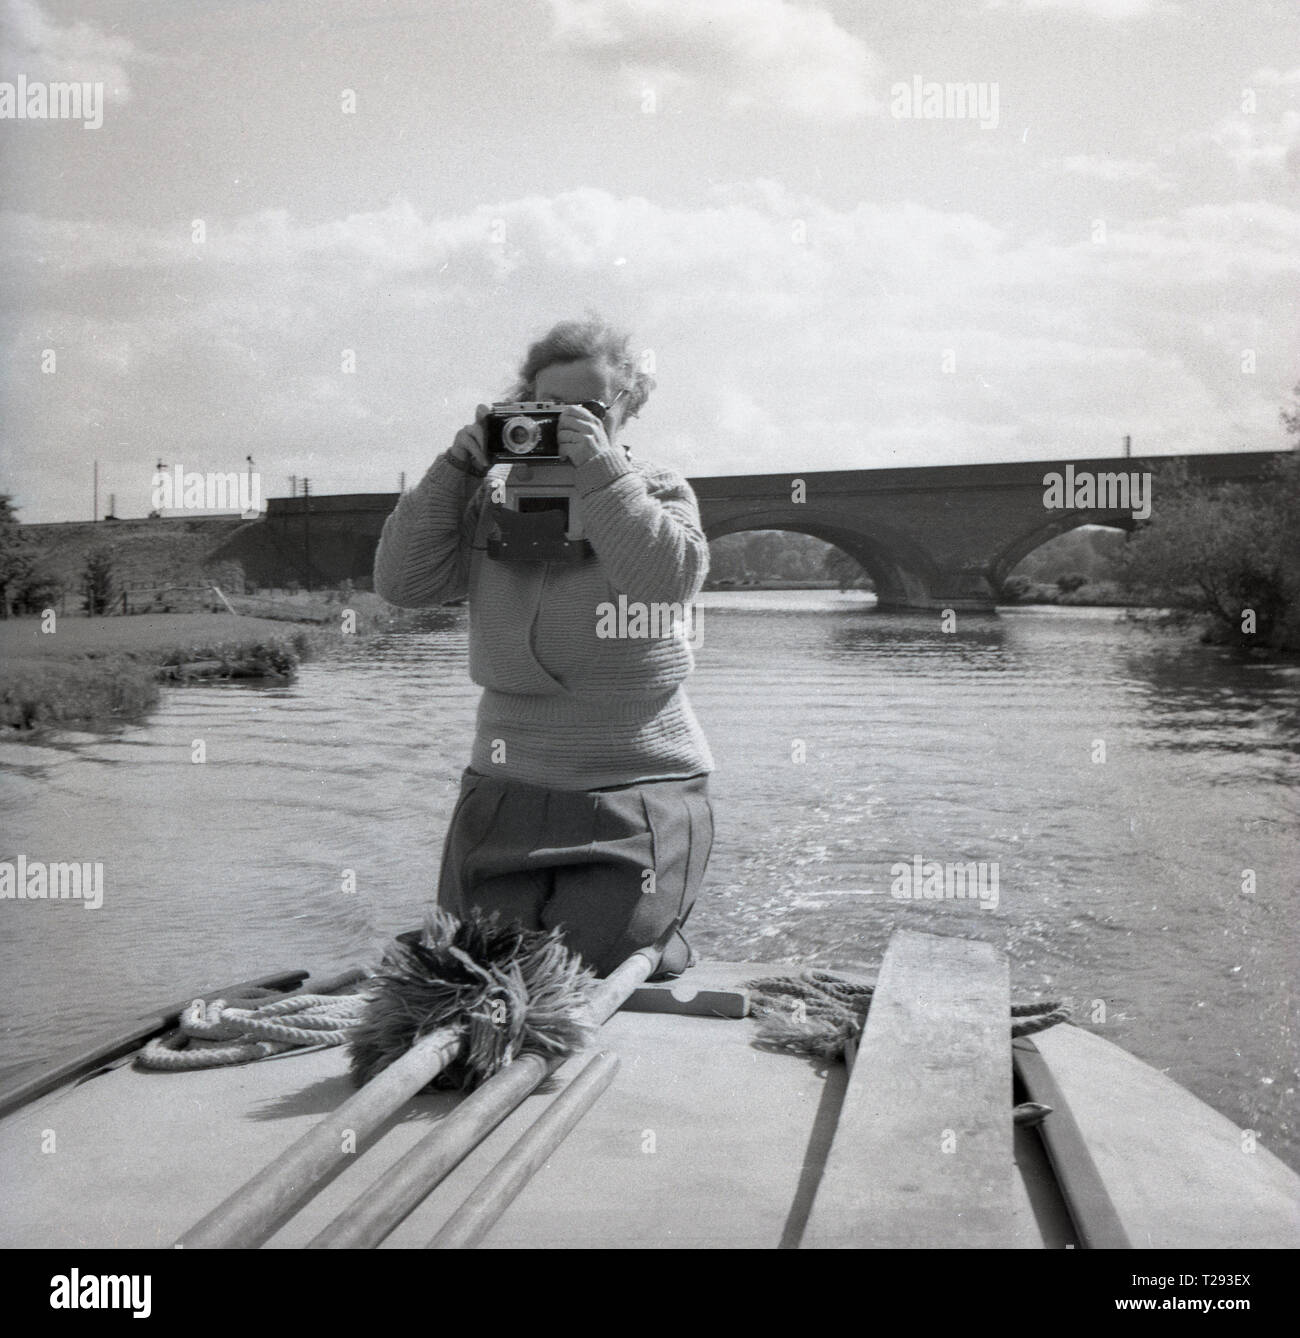 1950s, lady kneeling on the back of a motor boat or motor launch with a film camera taking a photograph, Oxford, England, UK. - Stock Image